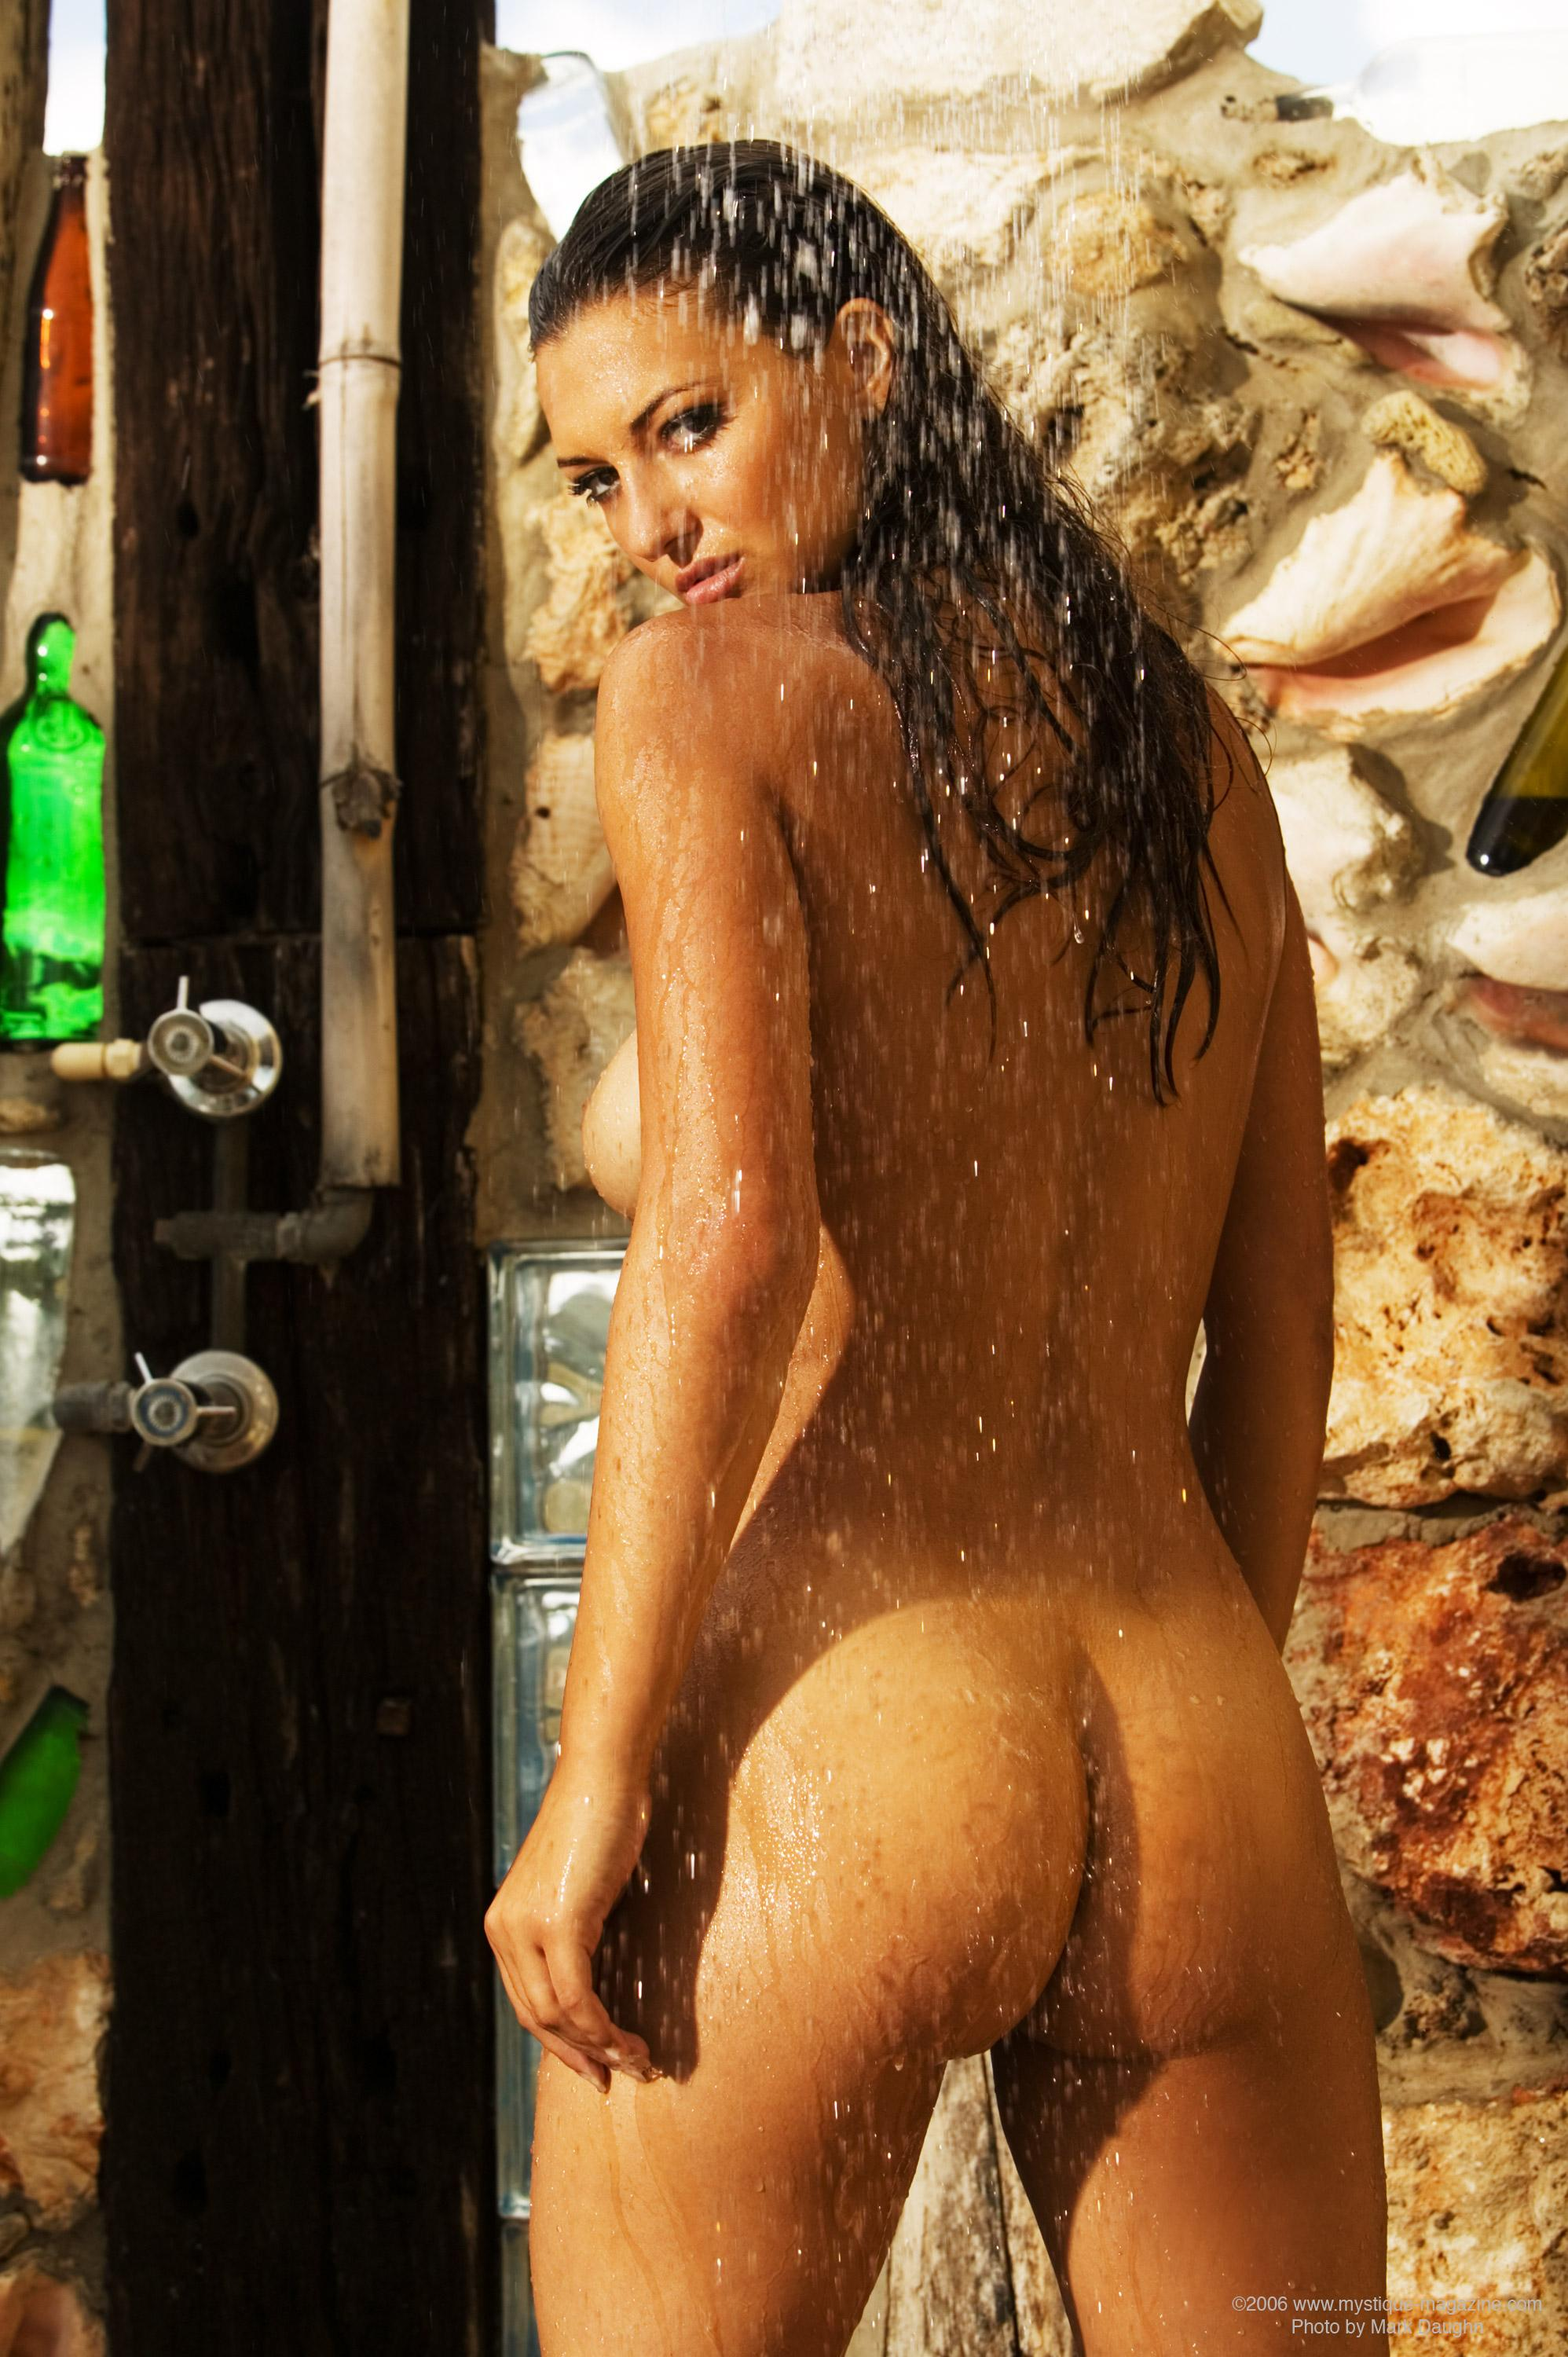 amiee rickards nude Let's Freight